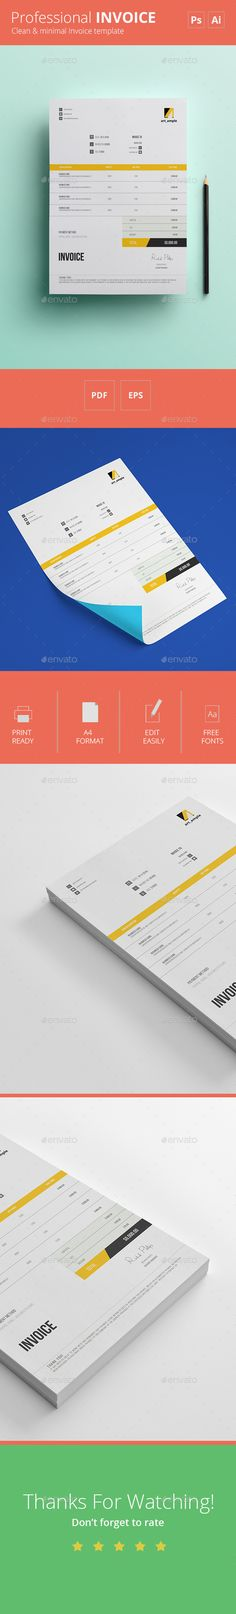 60 best Invoice Template Designs Download images on Pinterest     psd invoice template Simple Invoice Template  AI   PSD  by Raymar Lobaton   via Behance